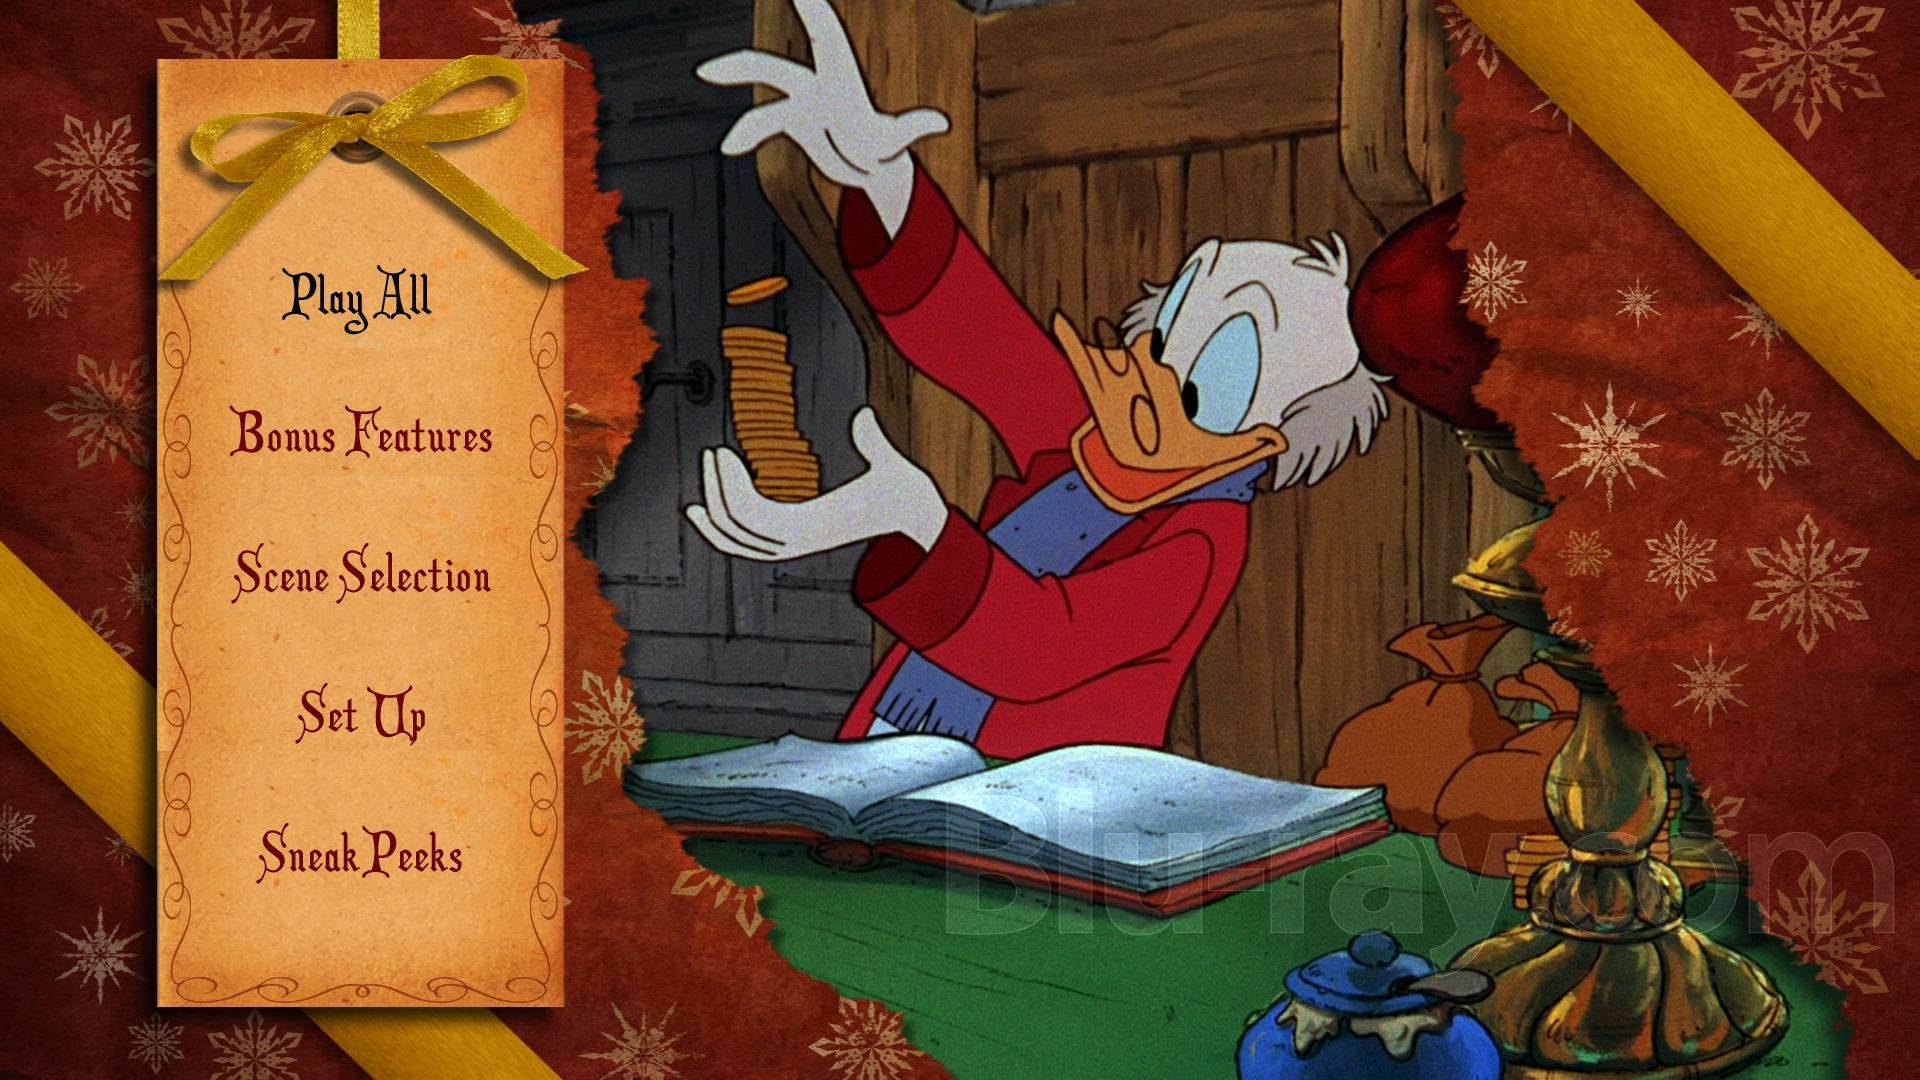 mickeys christmas carol 1983 winnie the pooh a very merry pooh year 2002 page 17 blu ray forum - Mickeys Christmas Carol Blu Ray